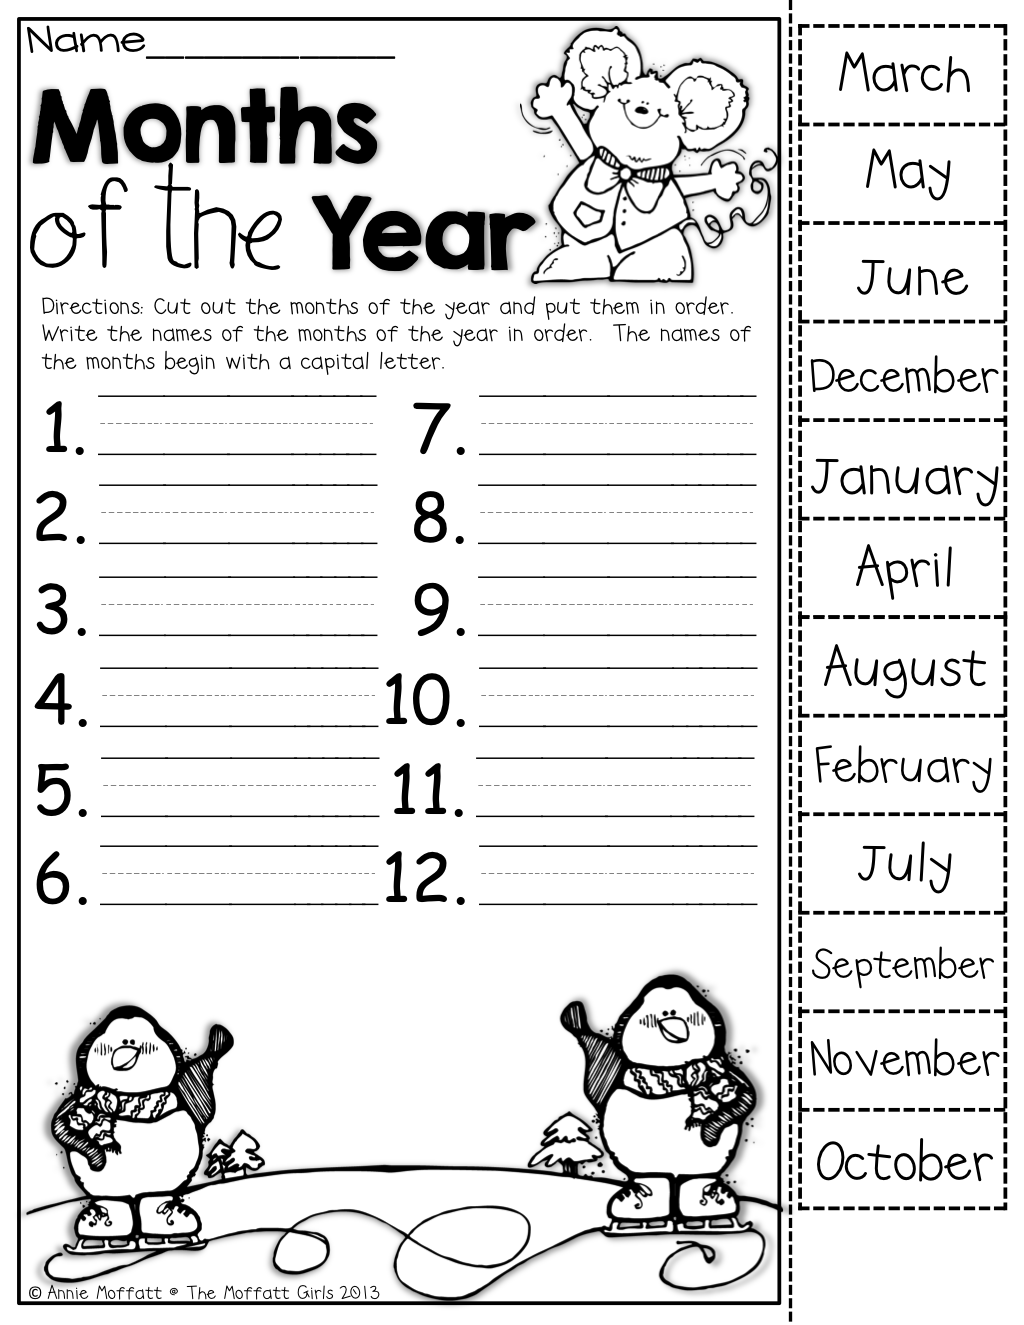 Months Of The Year Cut Out The Months Put Them In Order